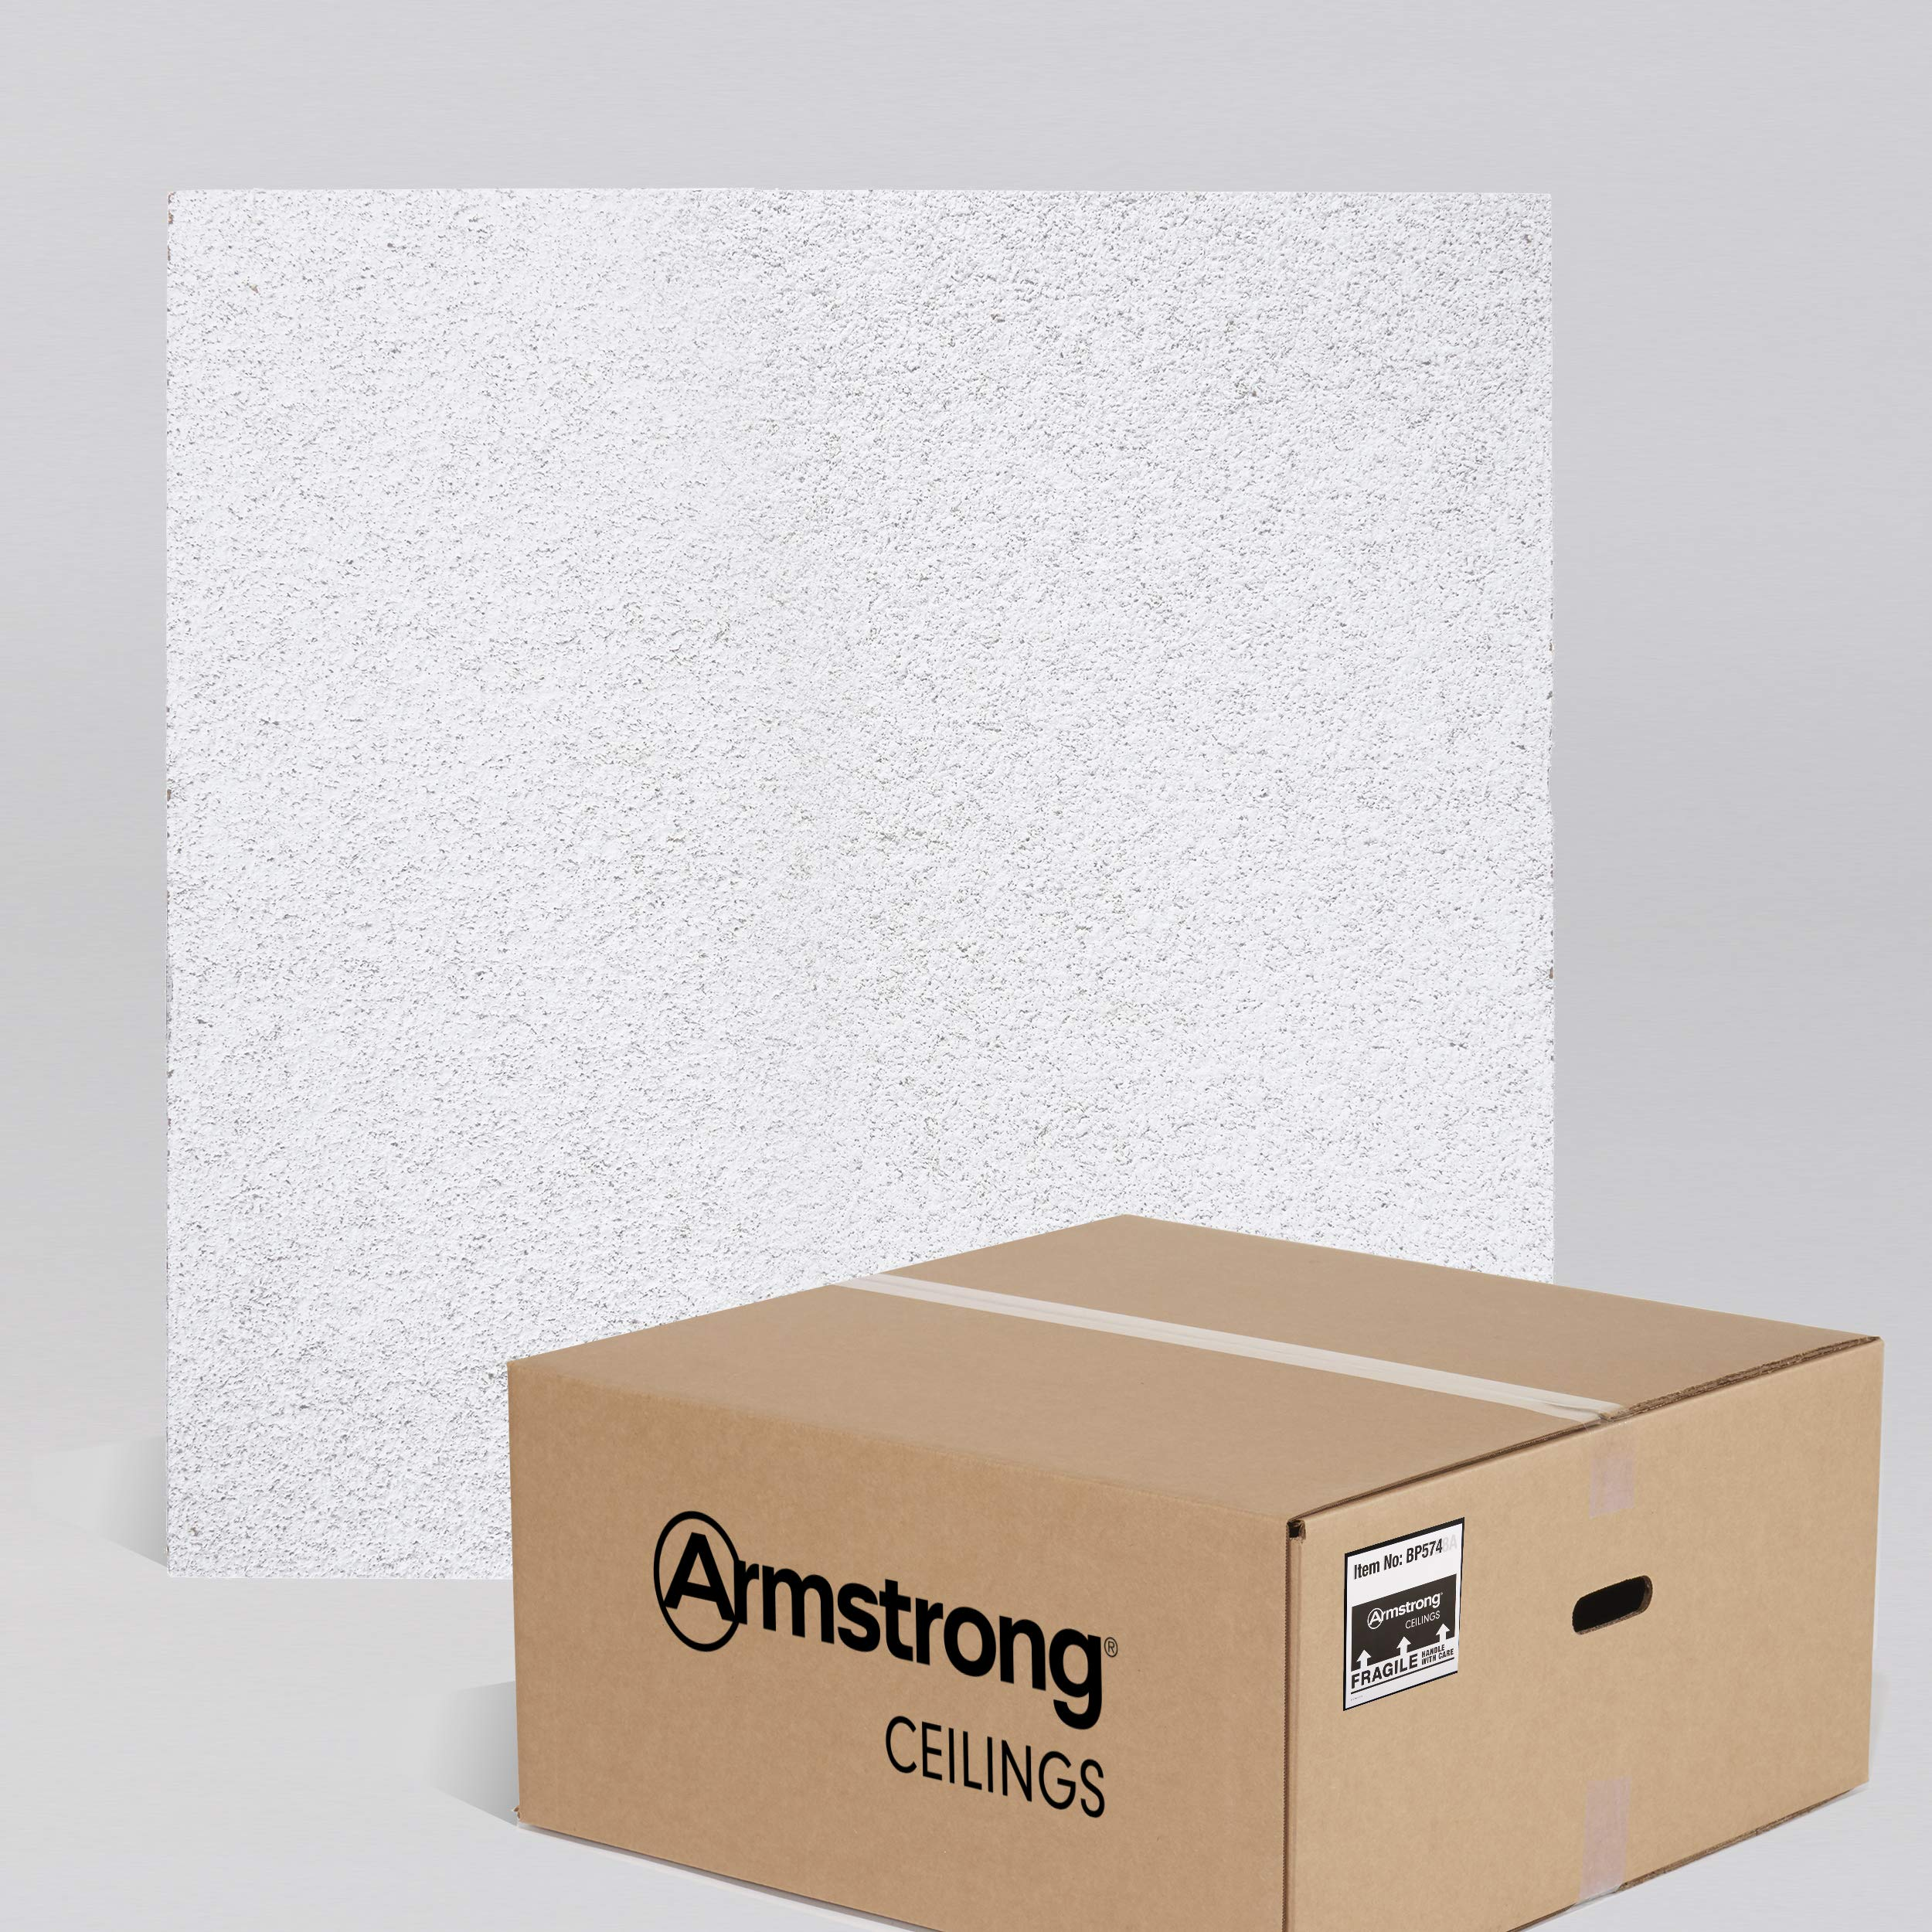 Armstrong Ceiling Tiles; 2x2 Ceiling Tiles - HUMIGUARD Plus Acoustic Ceilings for Suspended Ceiling Grid; Drop Ceiling Tiles Direct from the Manufacturer; CIRRUS Item 574 - 12 pcs White Lay-in